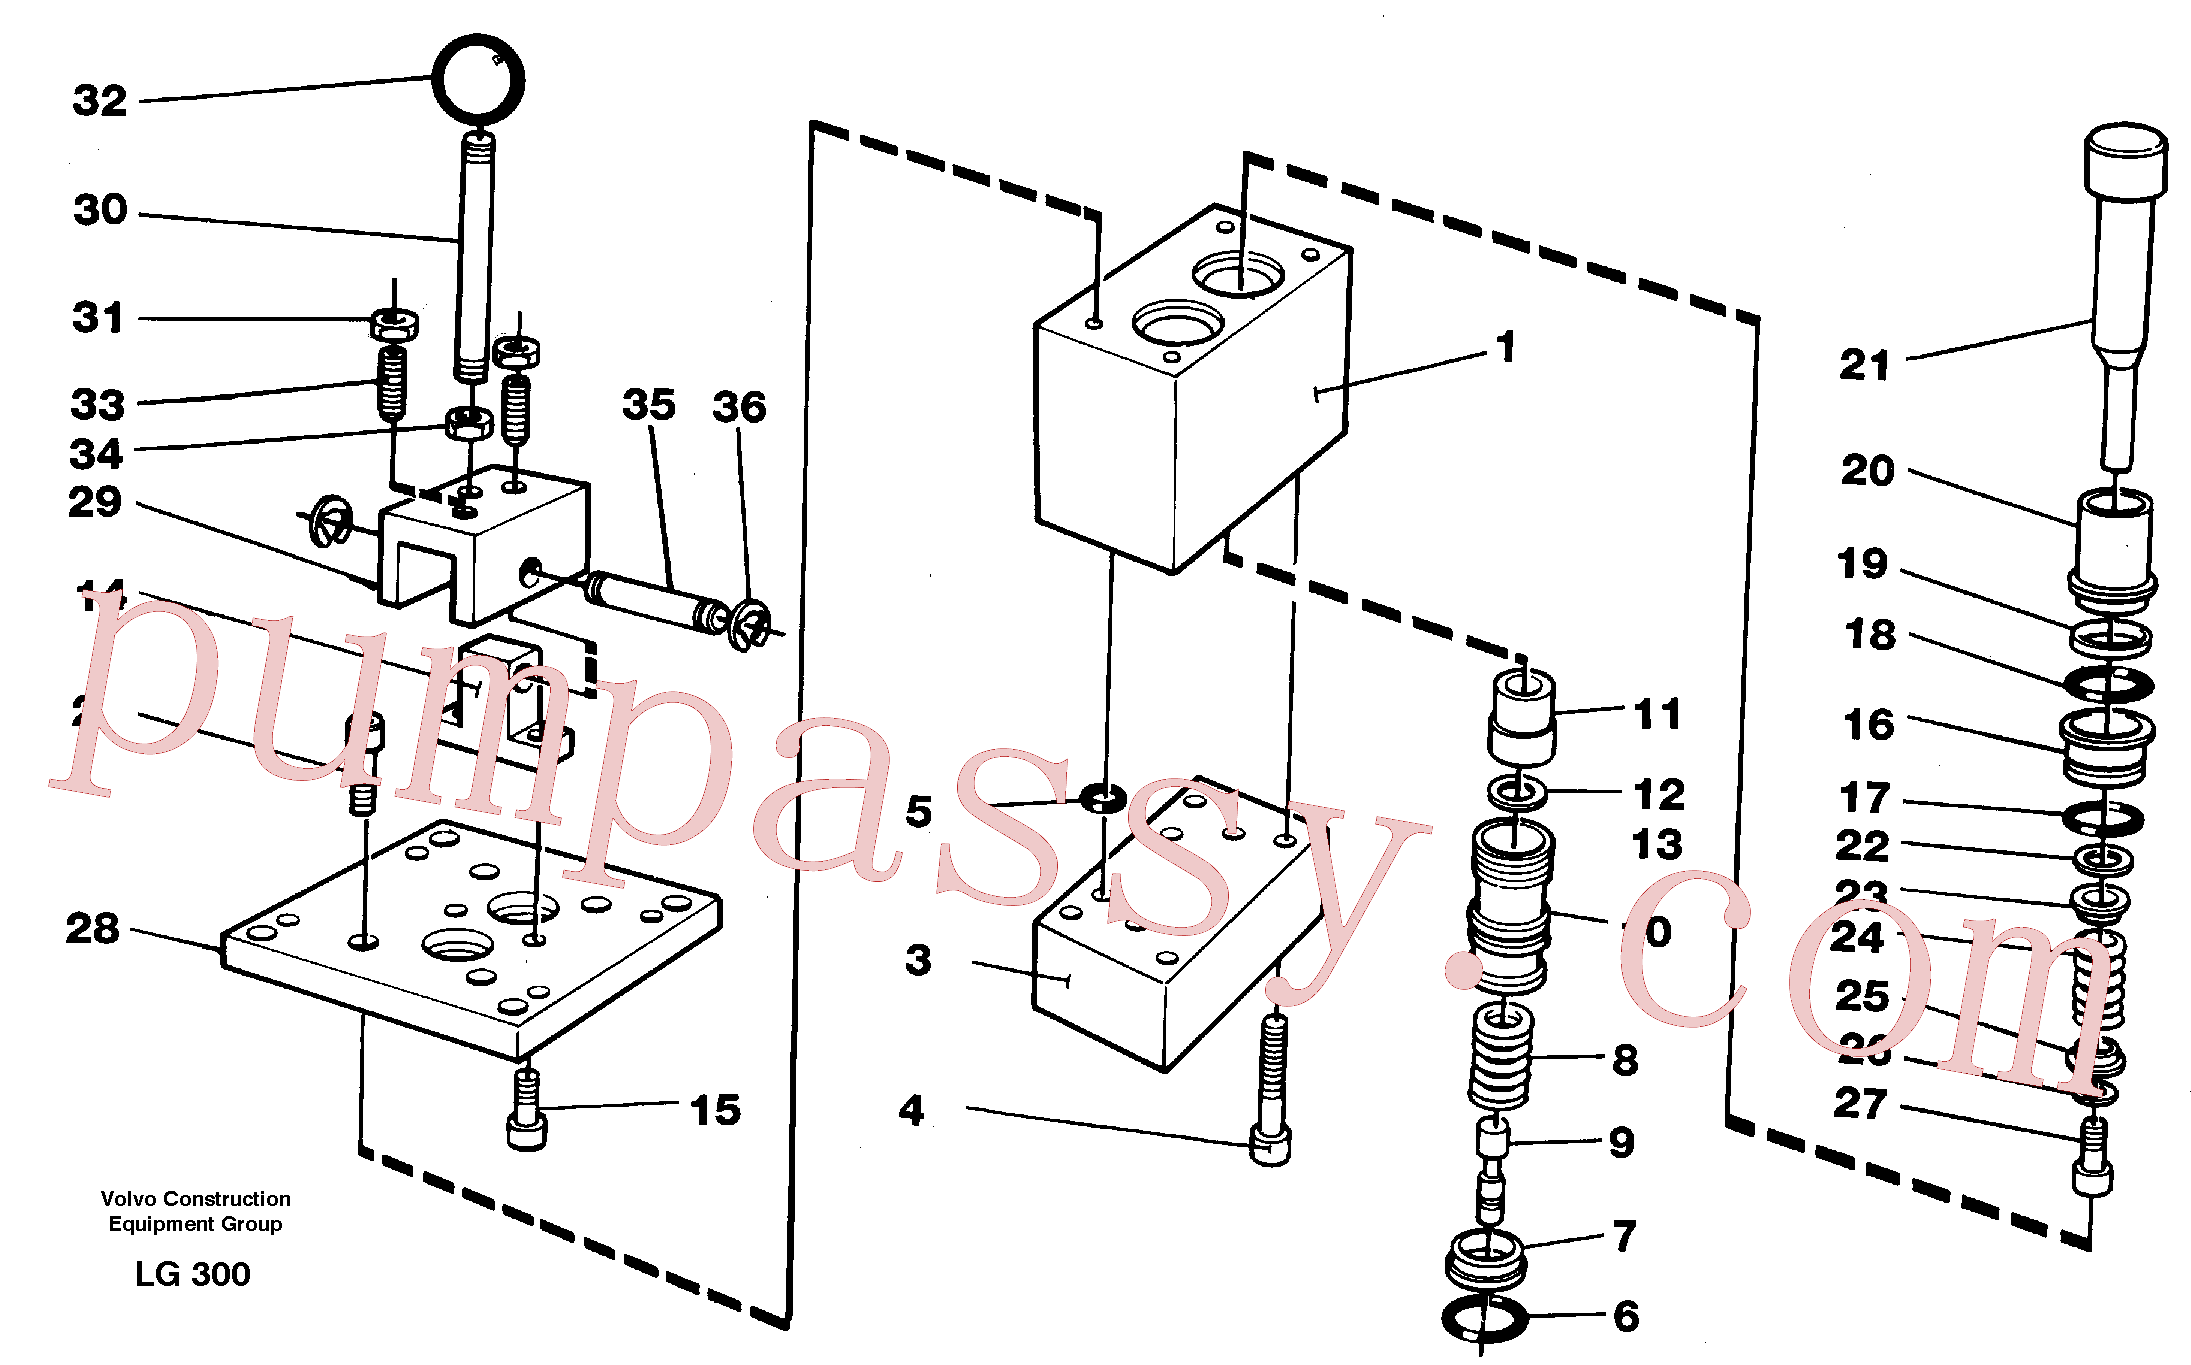 VOE14055259 for Volvo Control pressure valve(LG300 assembly)